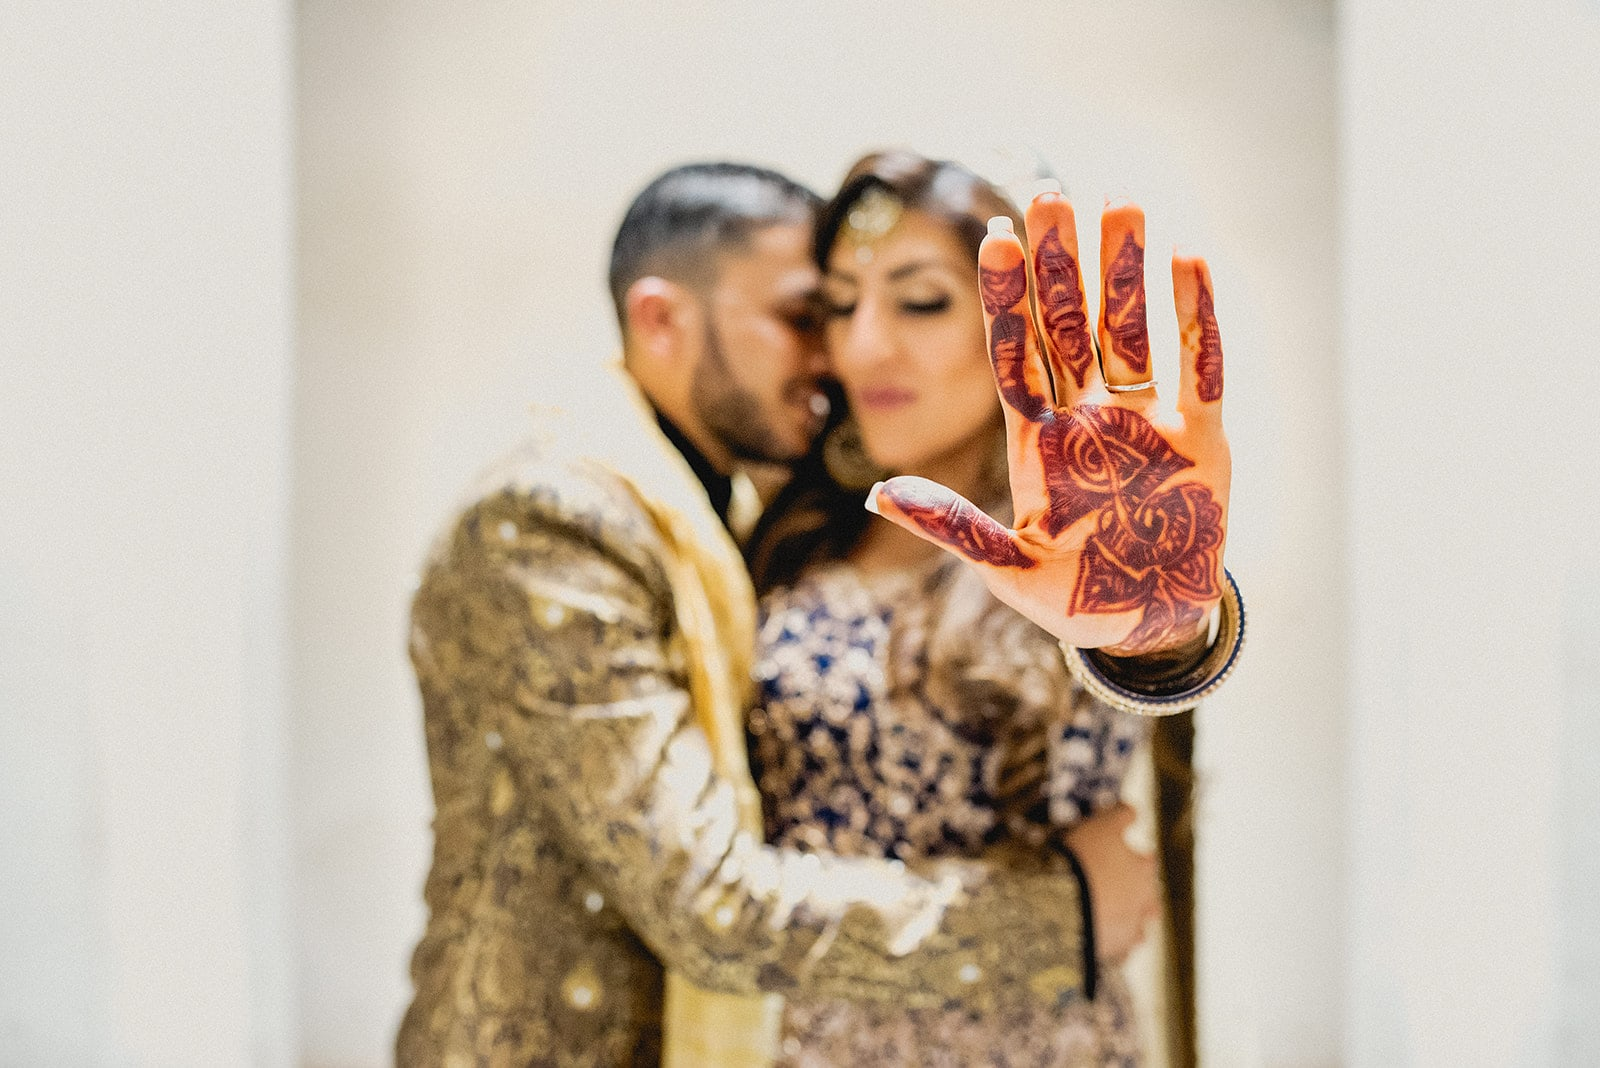 Asian Bride hold up her henna painted hand while she and her moroccan groom hug in the background